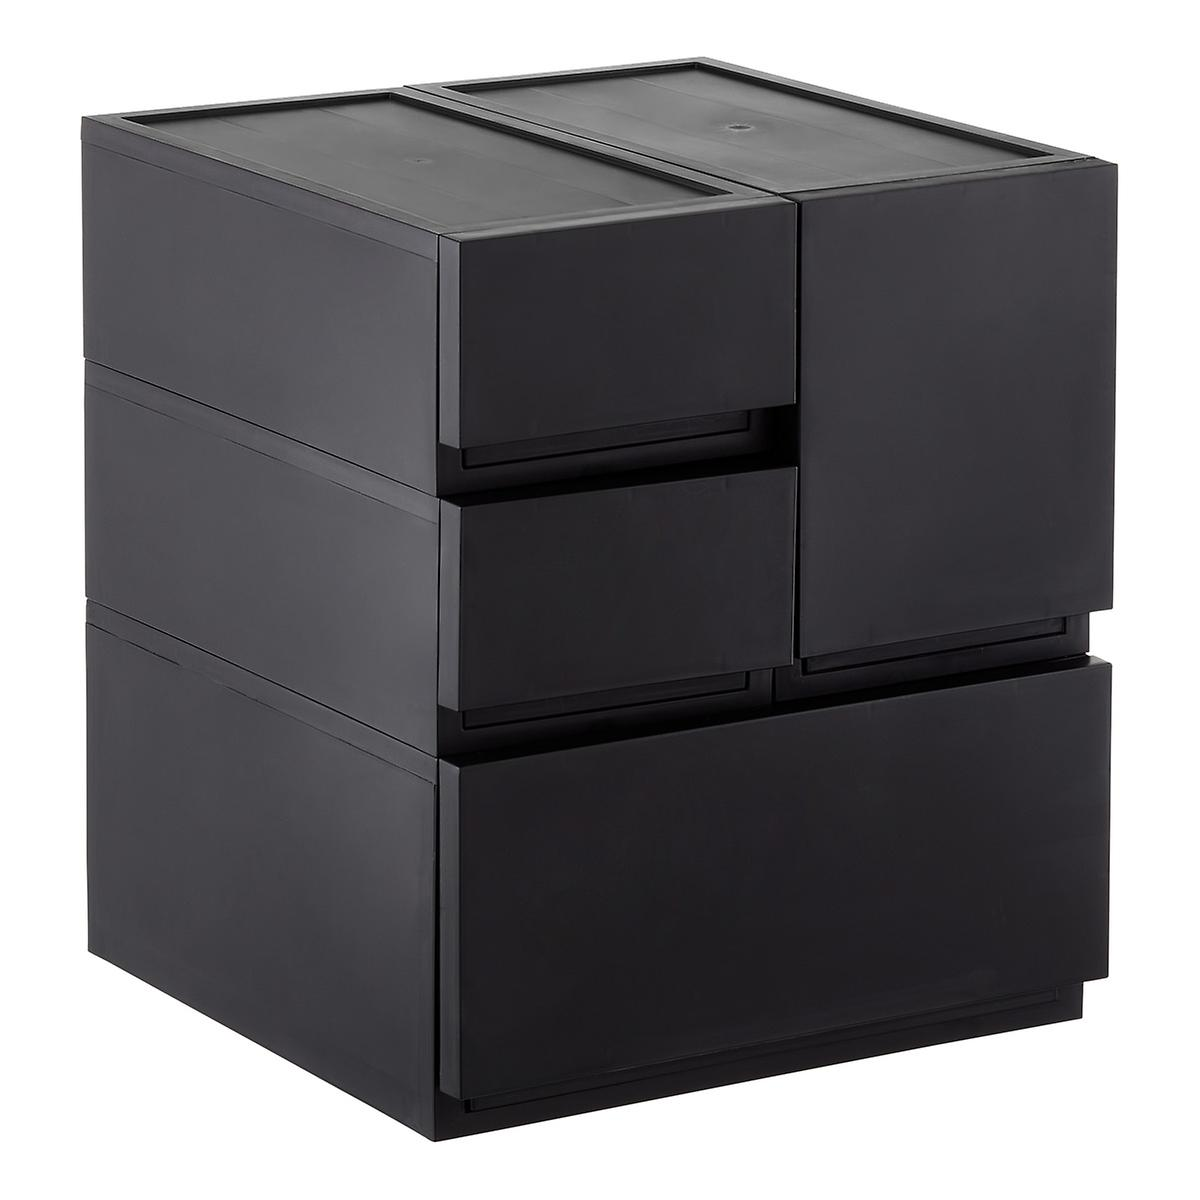 Closet Tower With Drawers Closet Drawers Bedroom Storage Drawers The Container Store